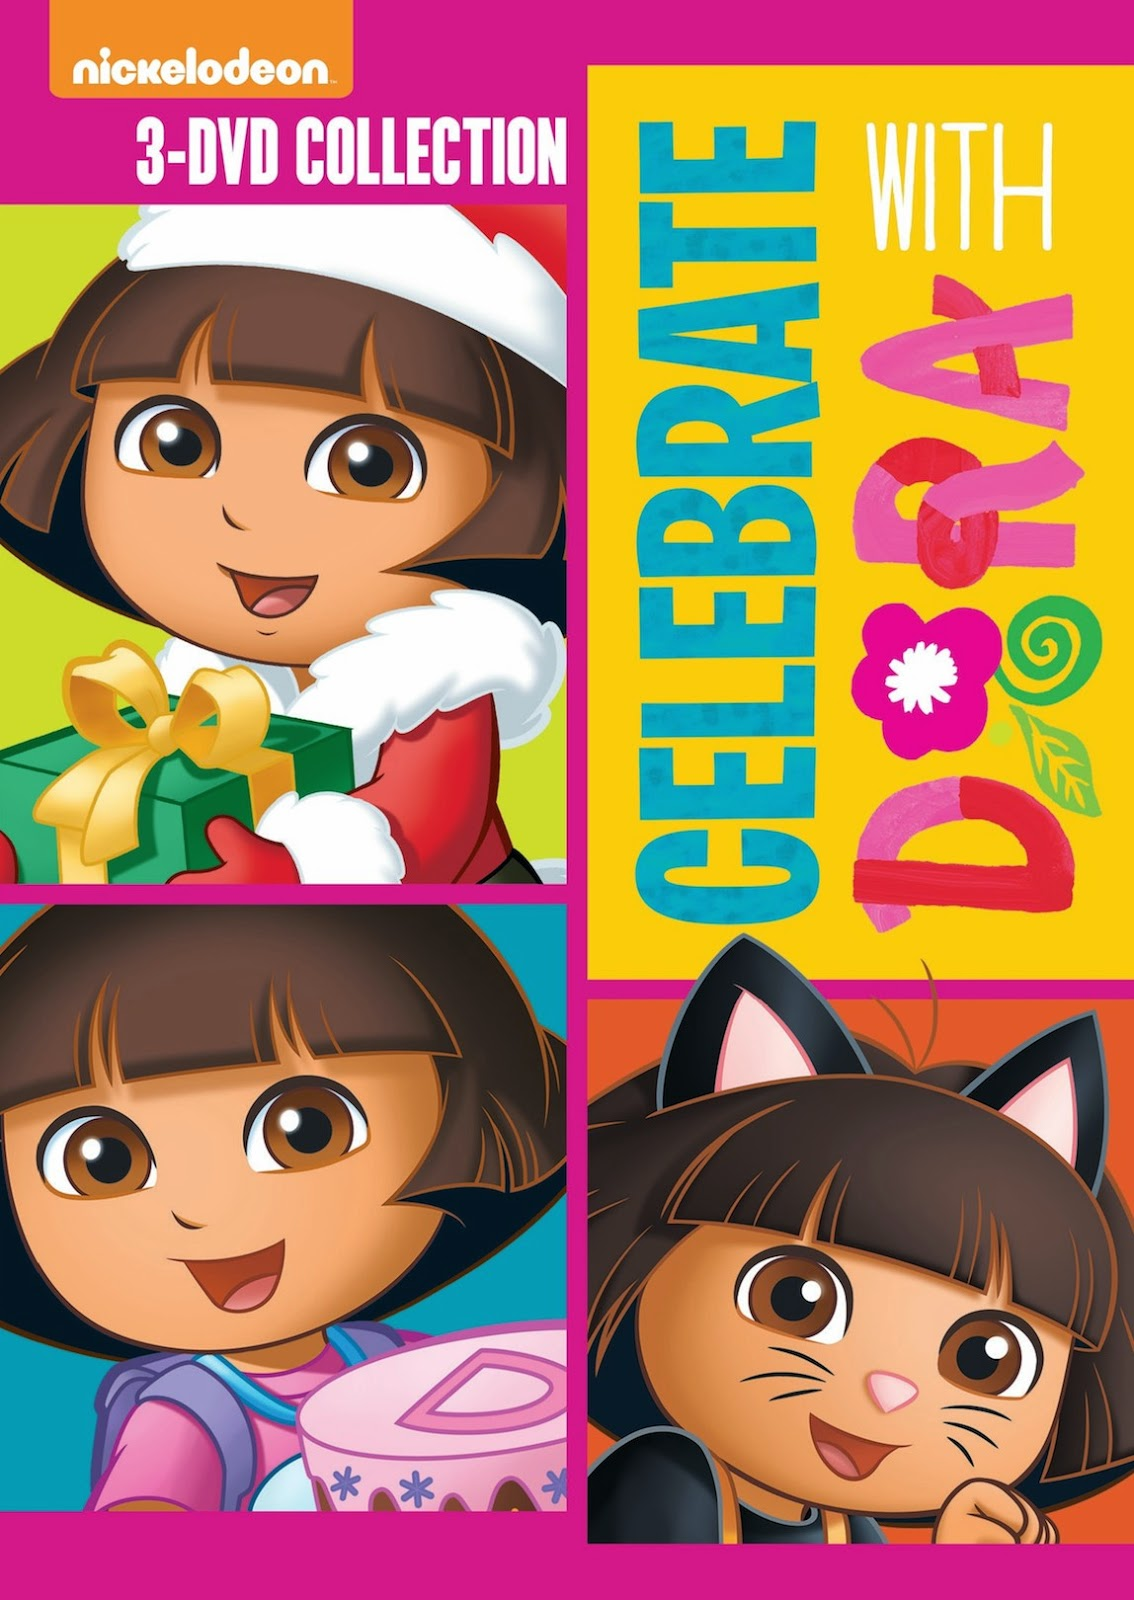 inspiredsavannah: dora the explorer: celebrate with dora, 3-dvd